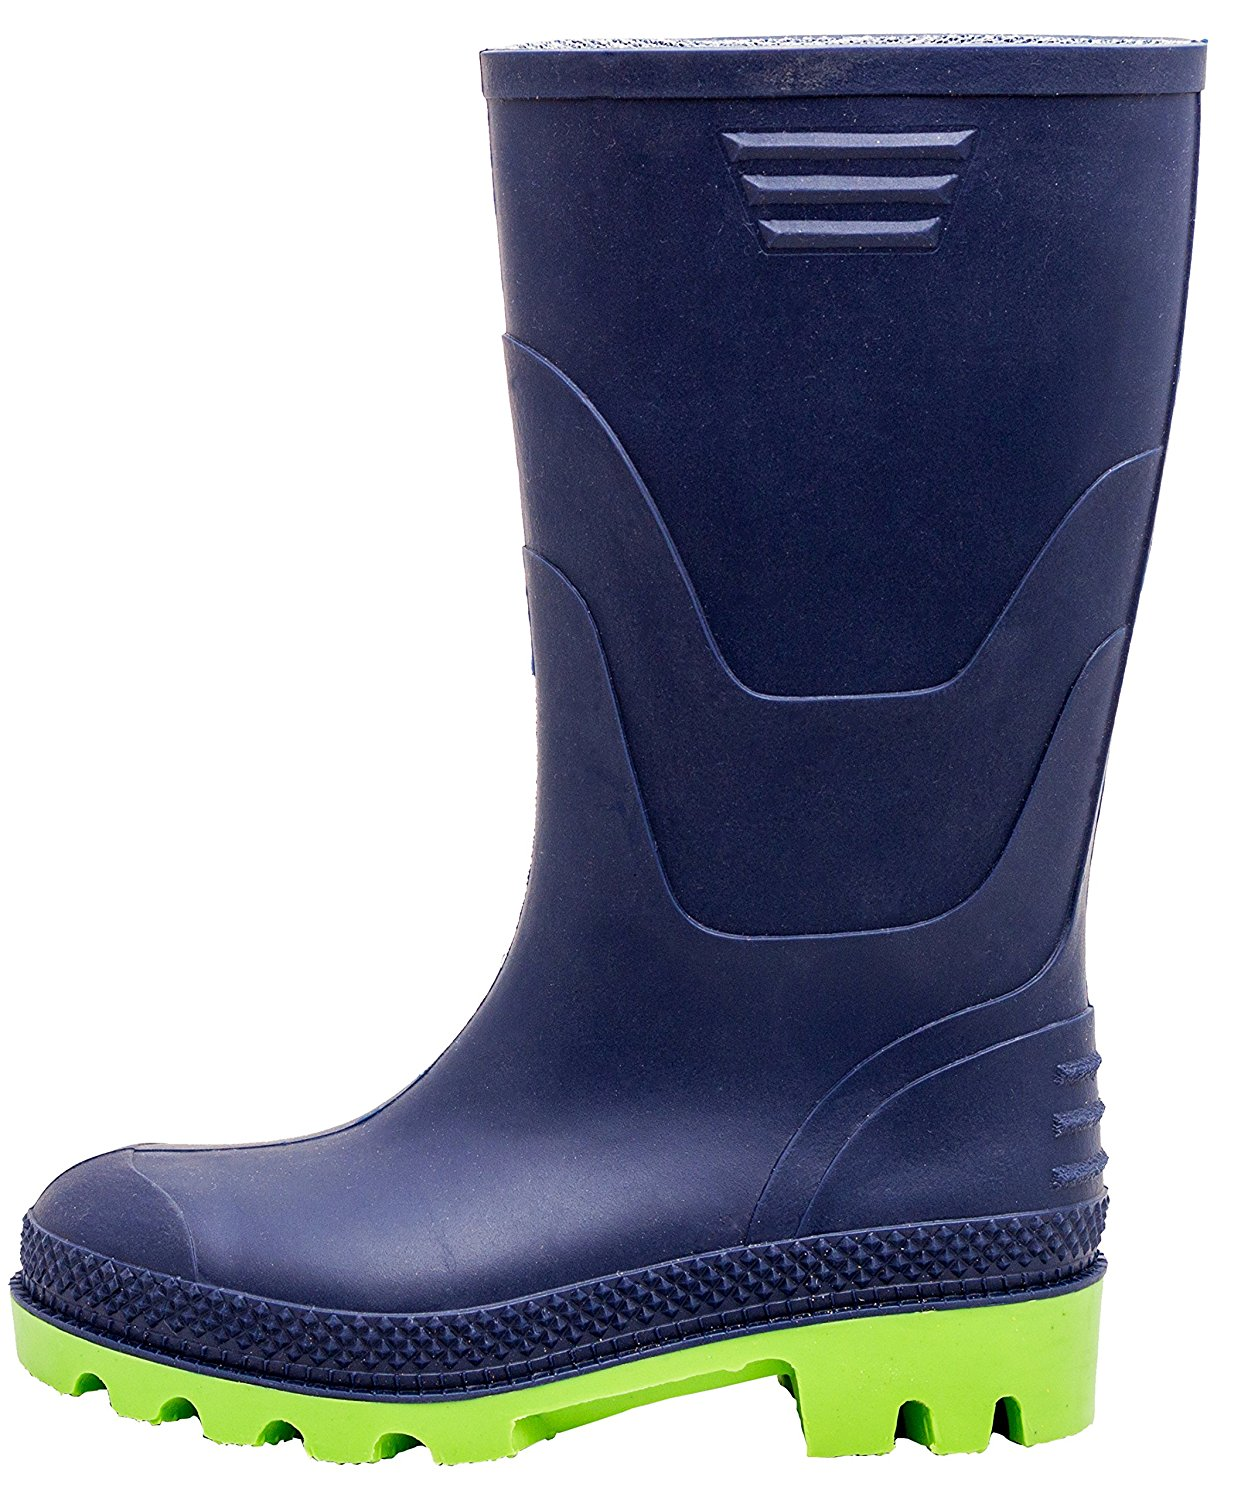 0b70f3ed1f47 Get Quotations · Curonian Boots Solid PVC Children Kids Navy Green  Wellington Rain Boots Sizes 2M-5M